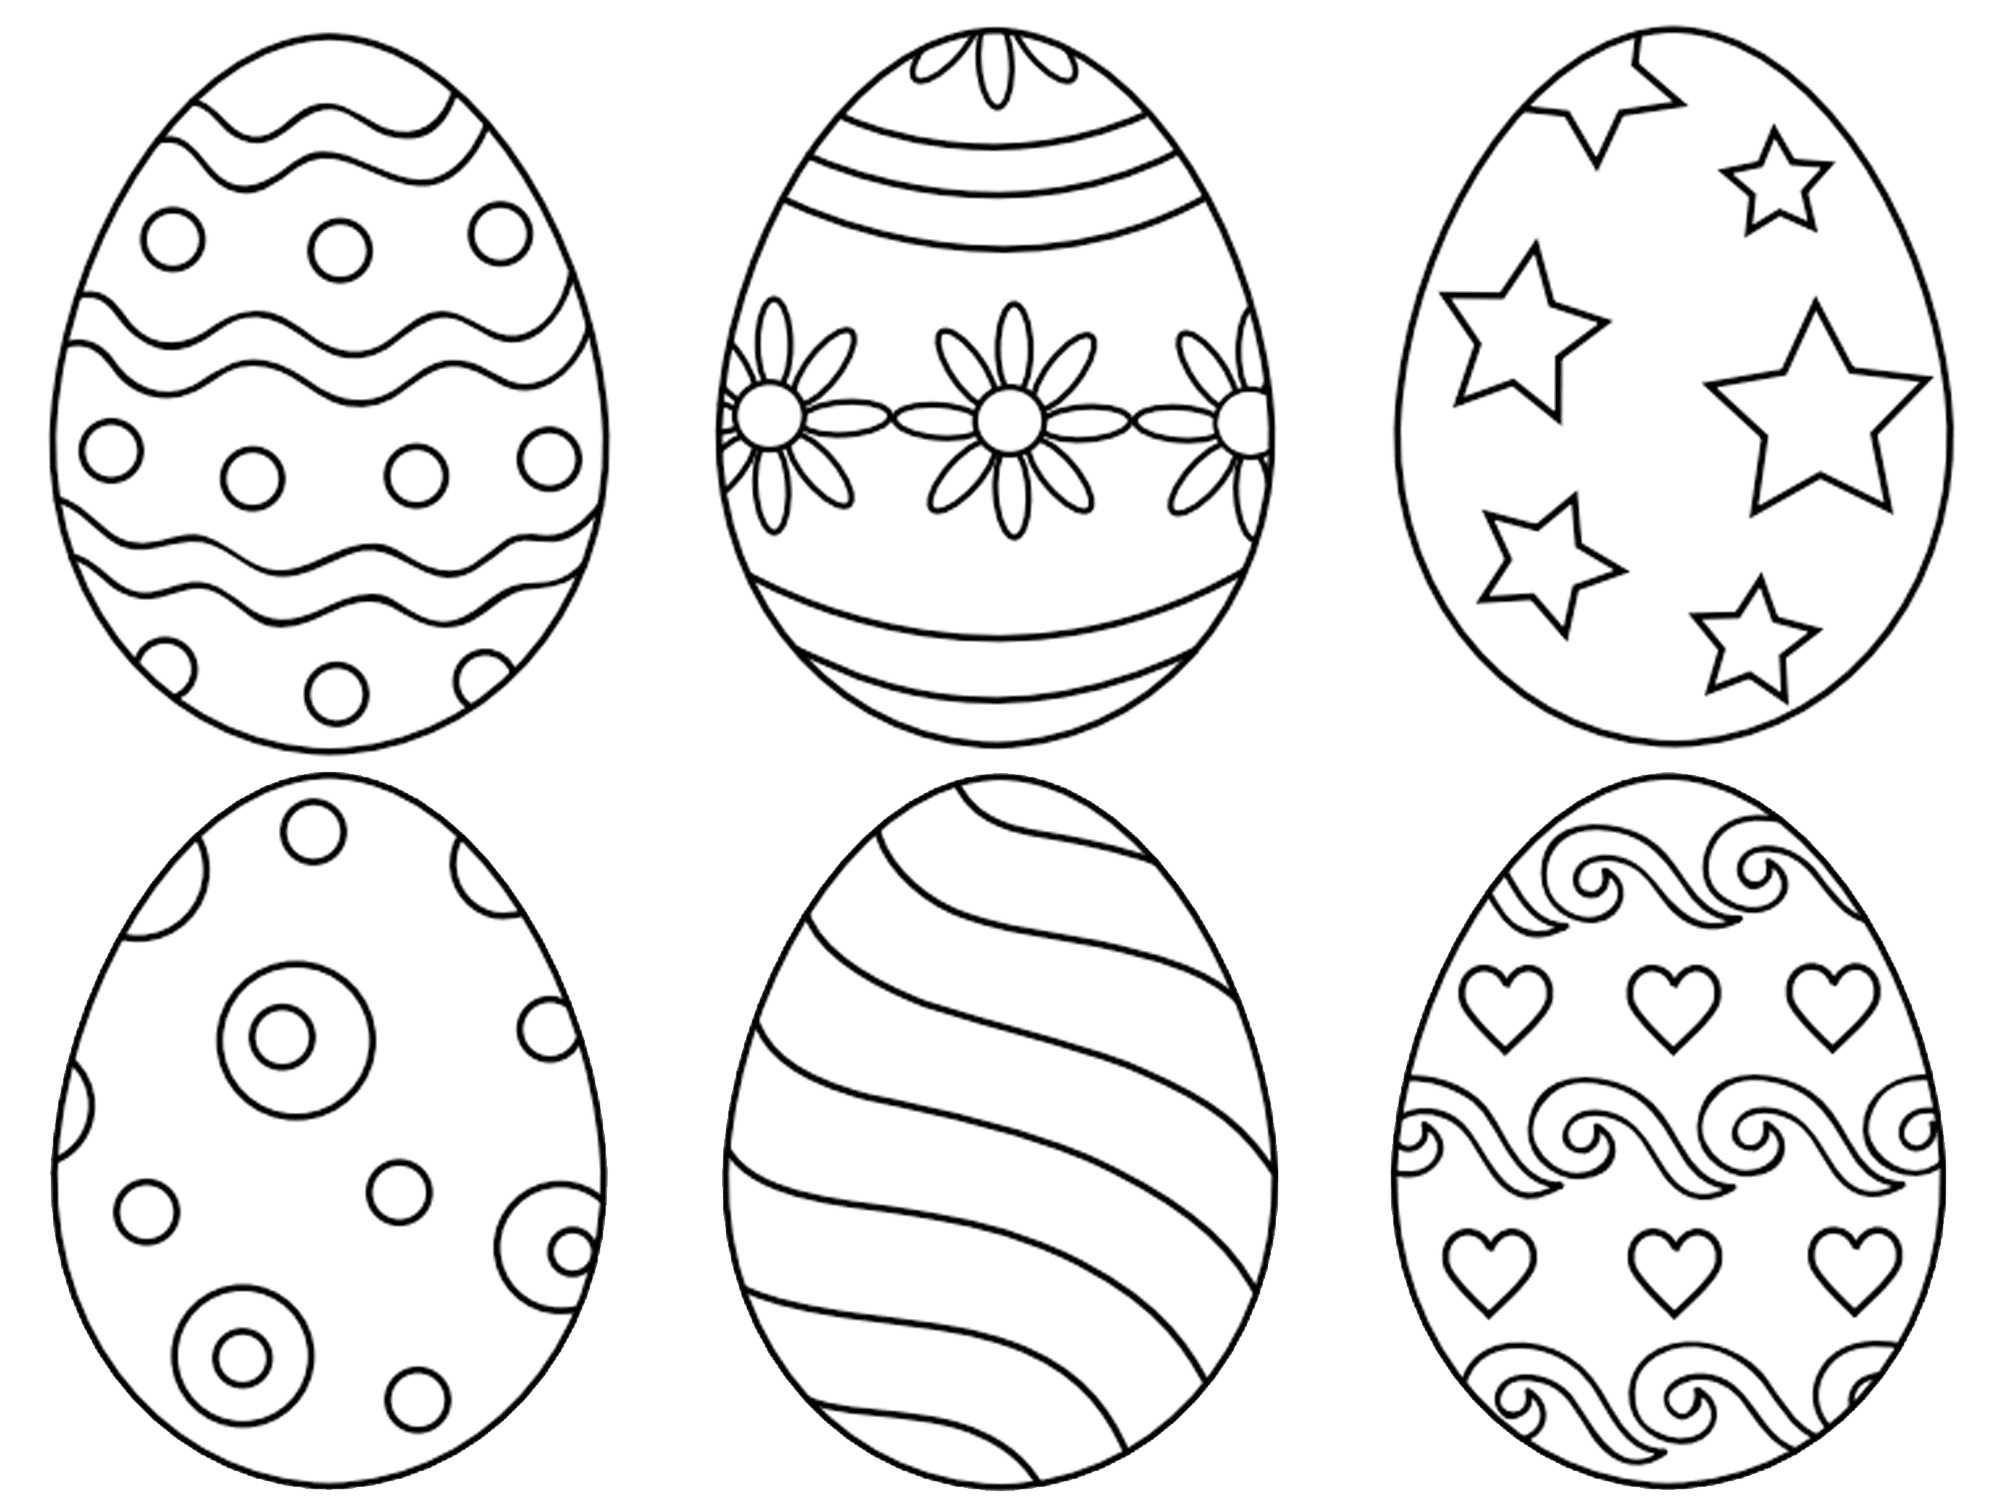 271 Free, Printable Easter Egg Coloring Pages - Free Printable Easter Stuff